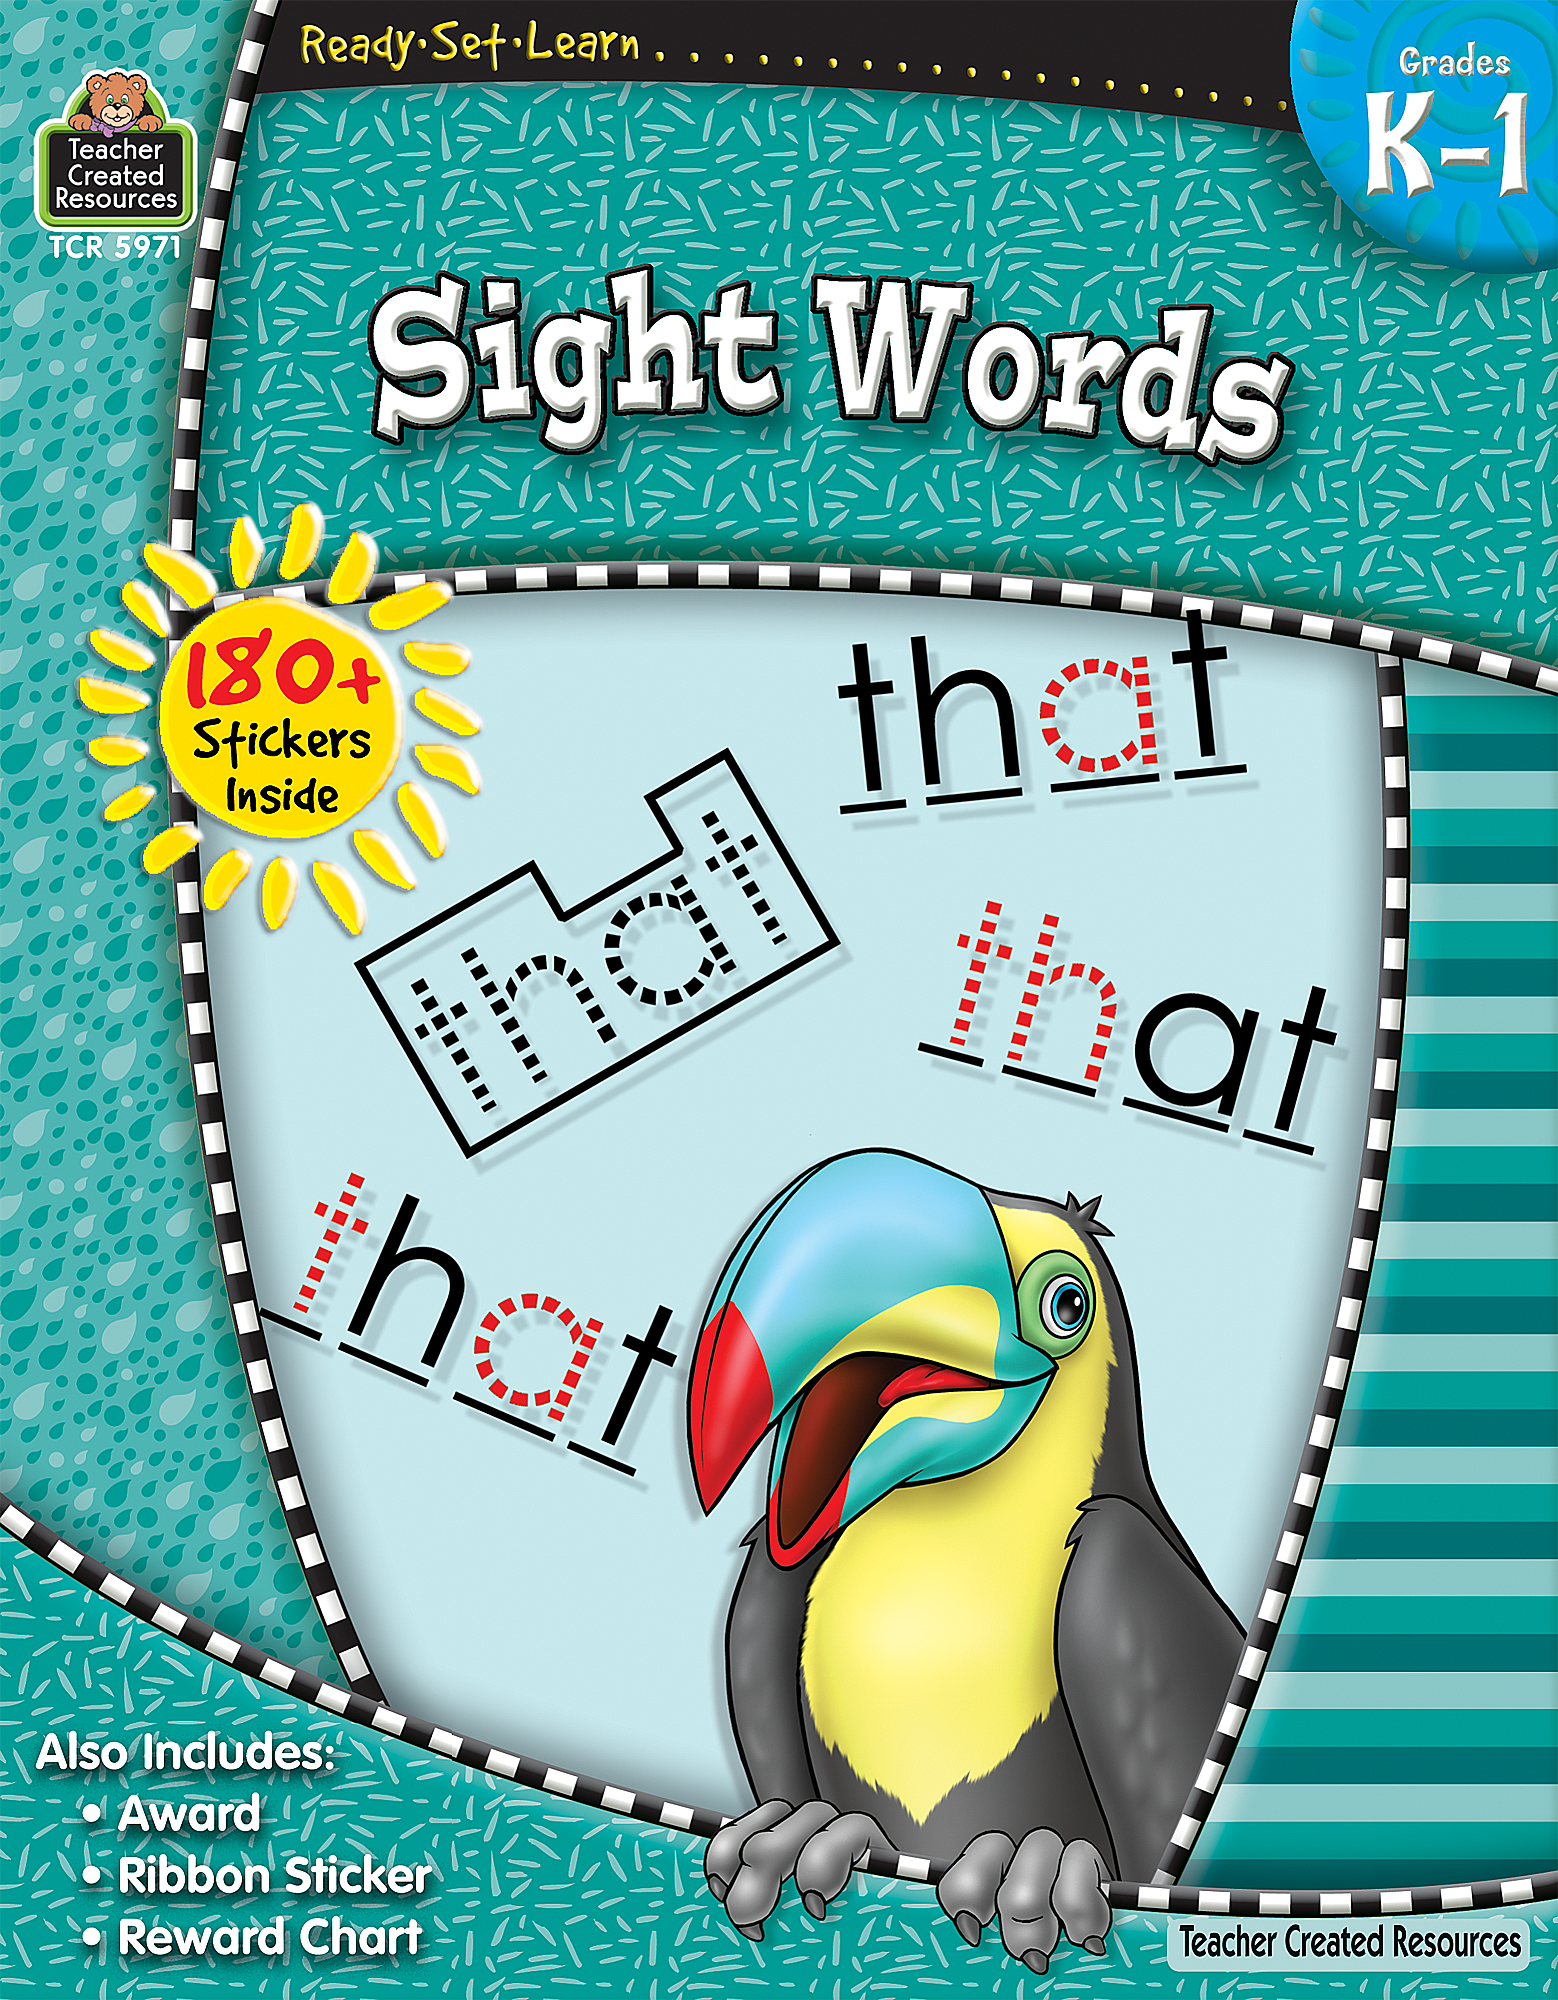 ready set learn sight words grade   tcr teacher created resources